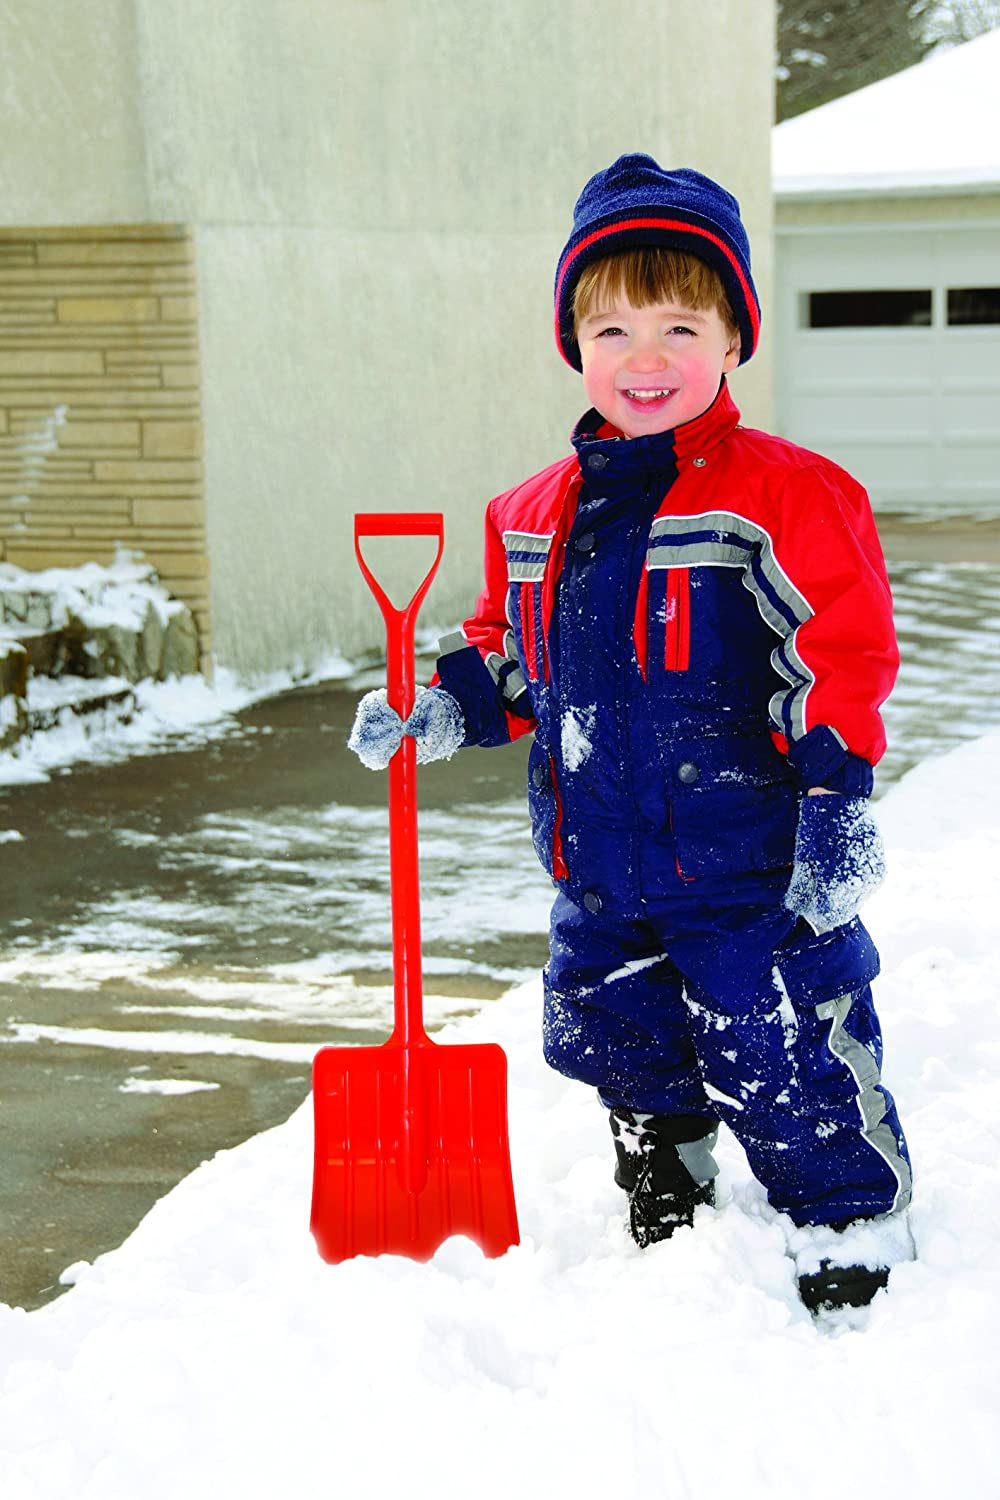 Best Snow Shovel Reviews and Buying Guide 14